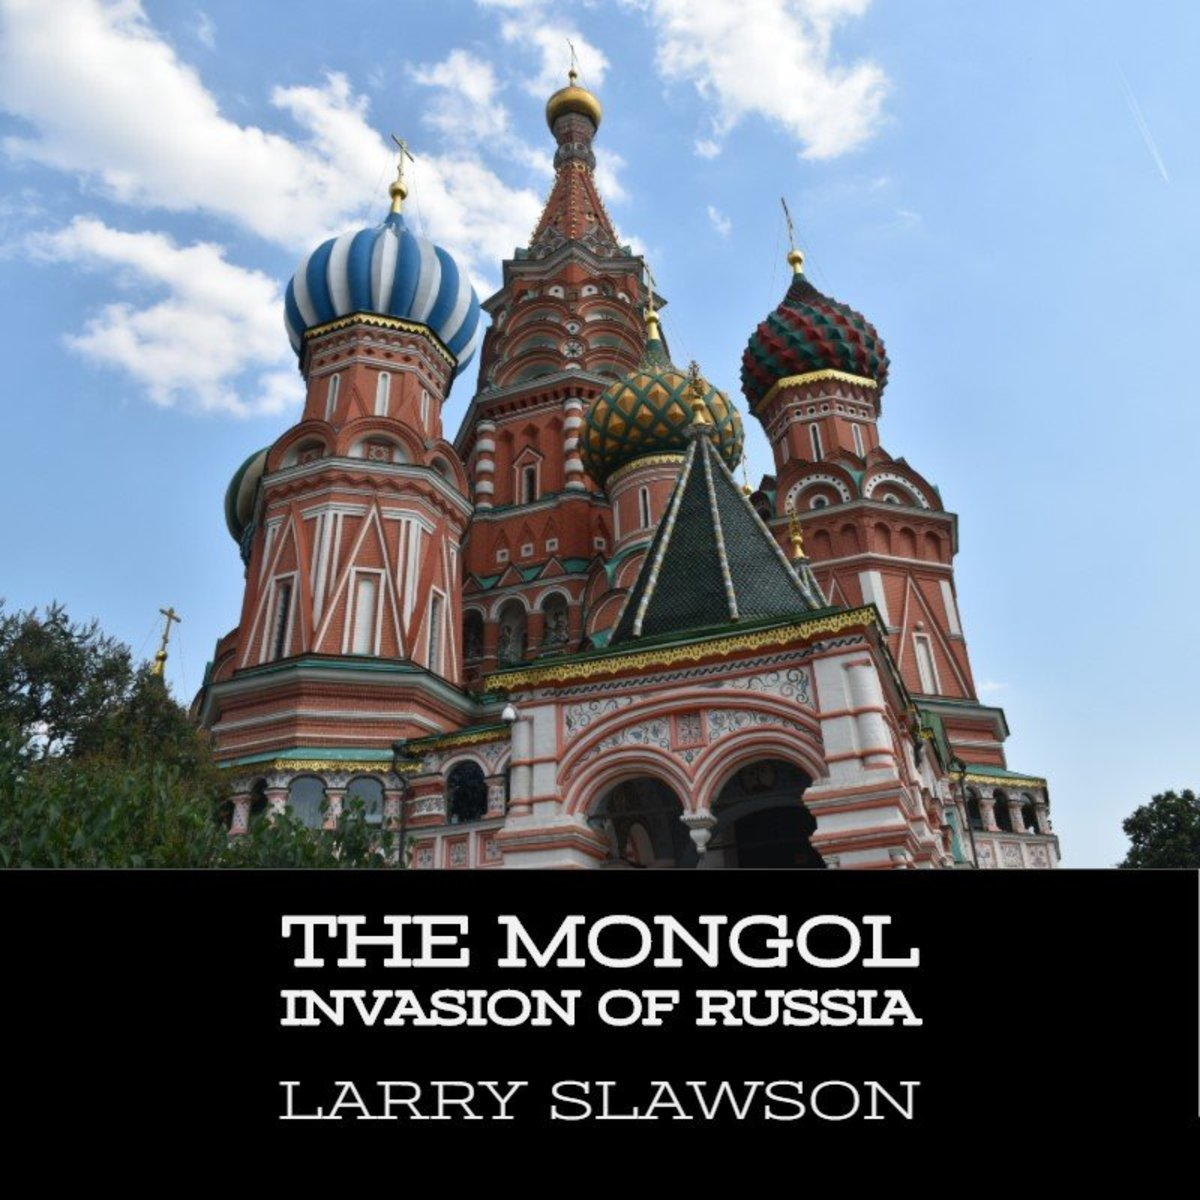 The Mongol Invasion of Russia